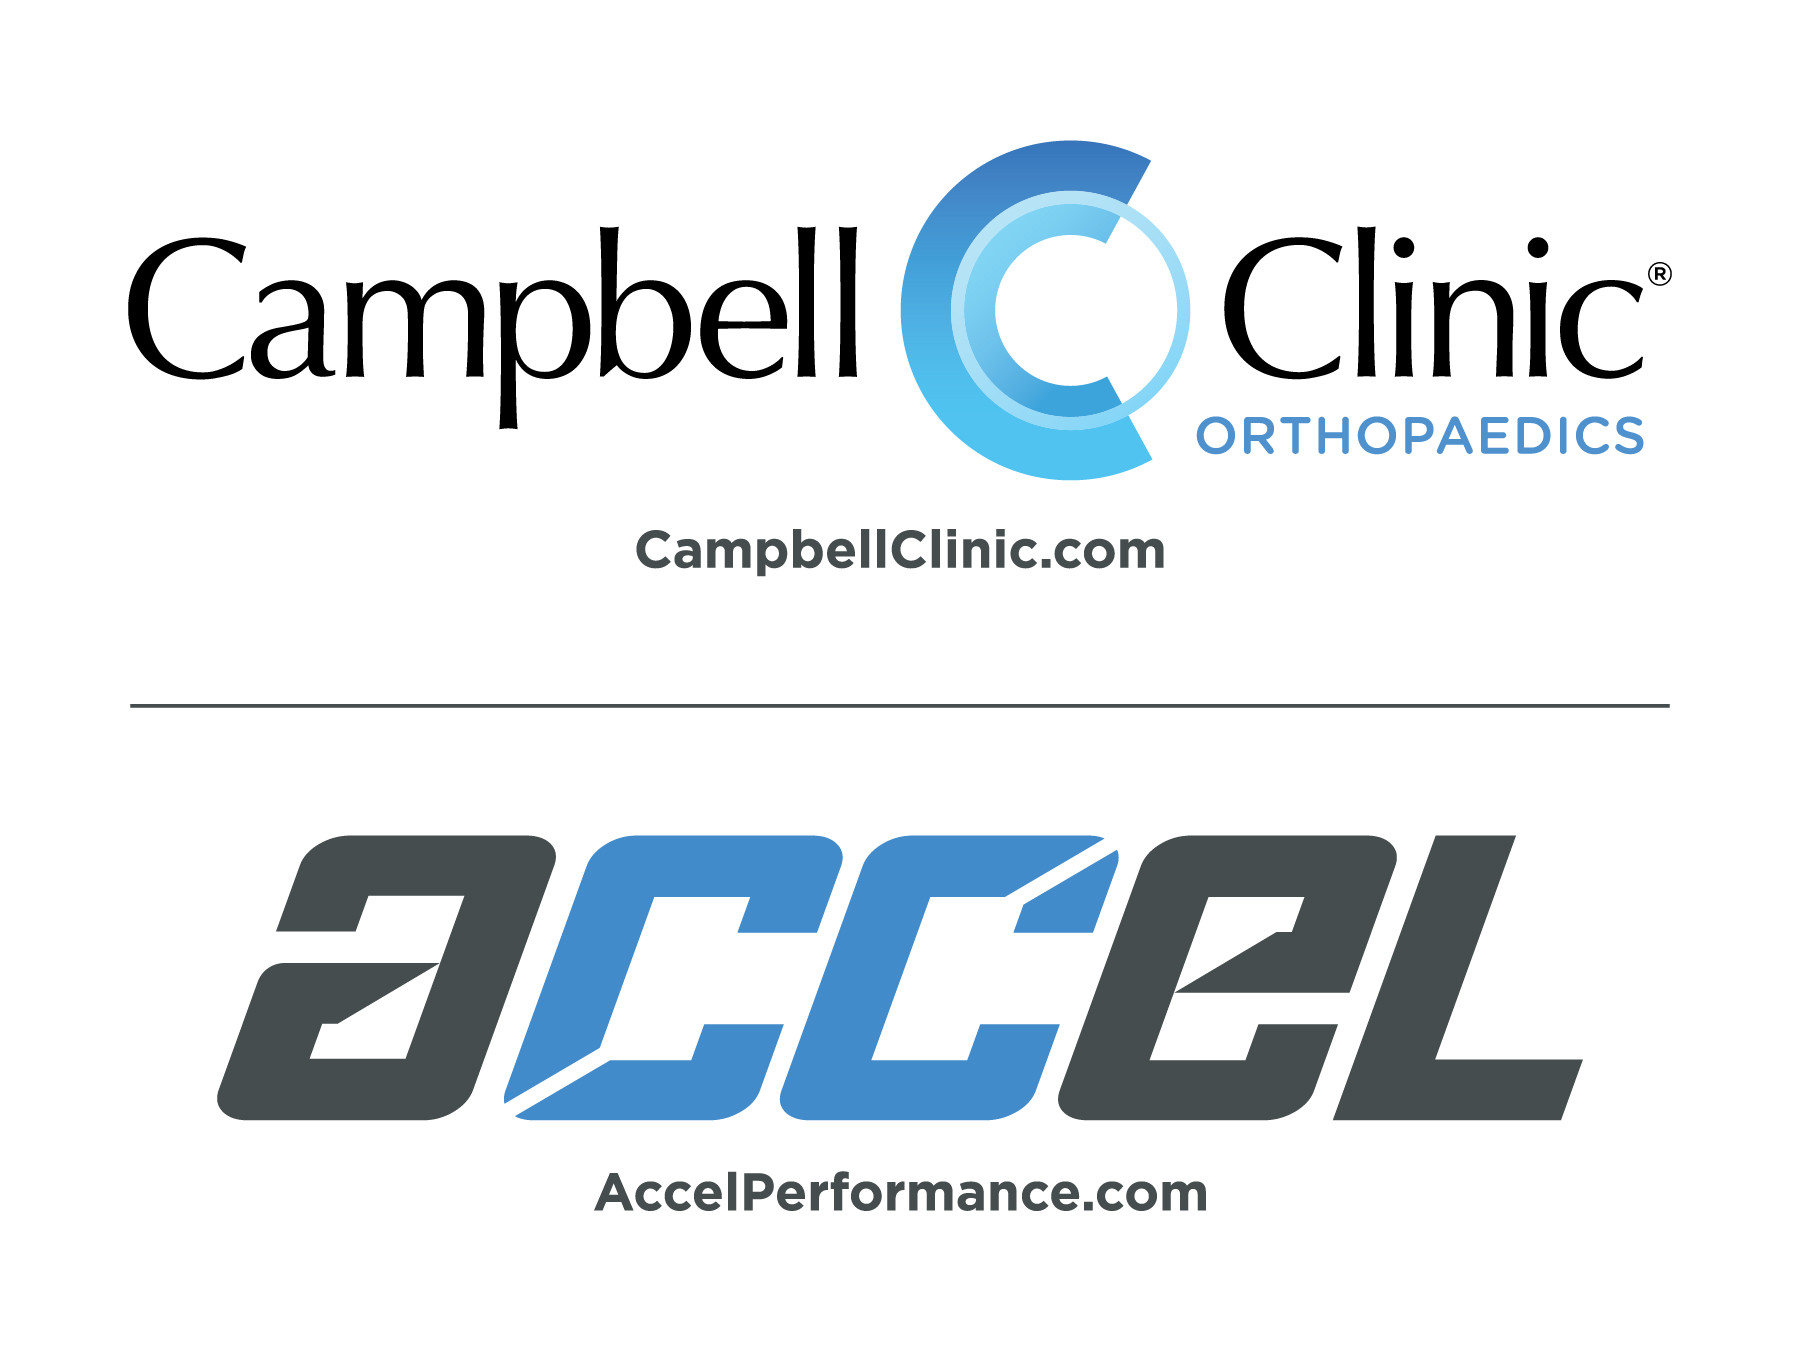 Campbell Clinic